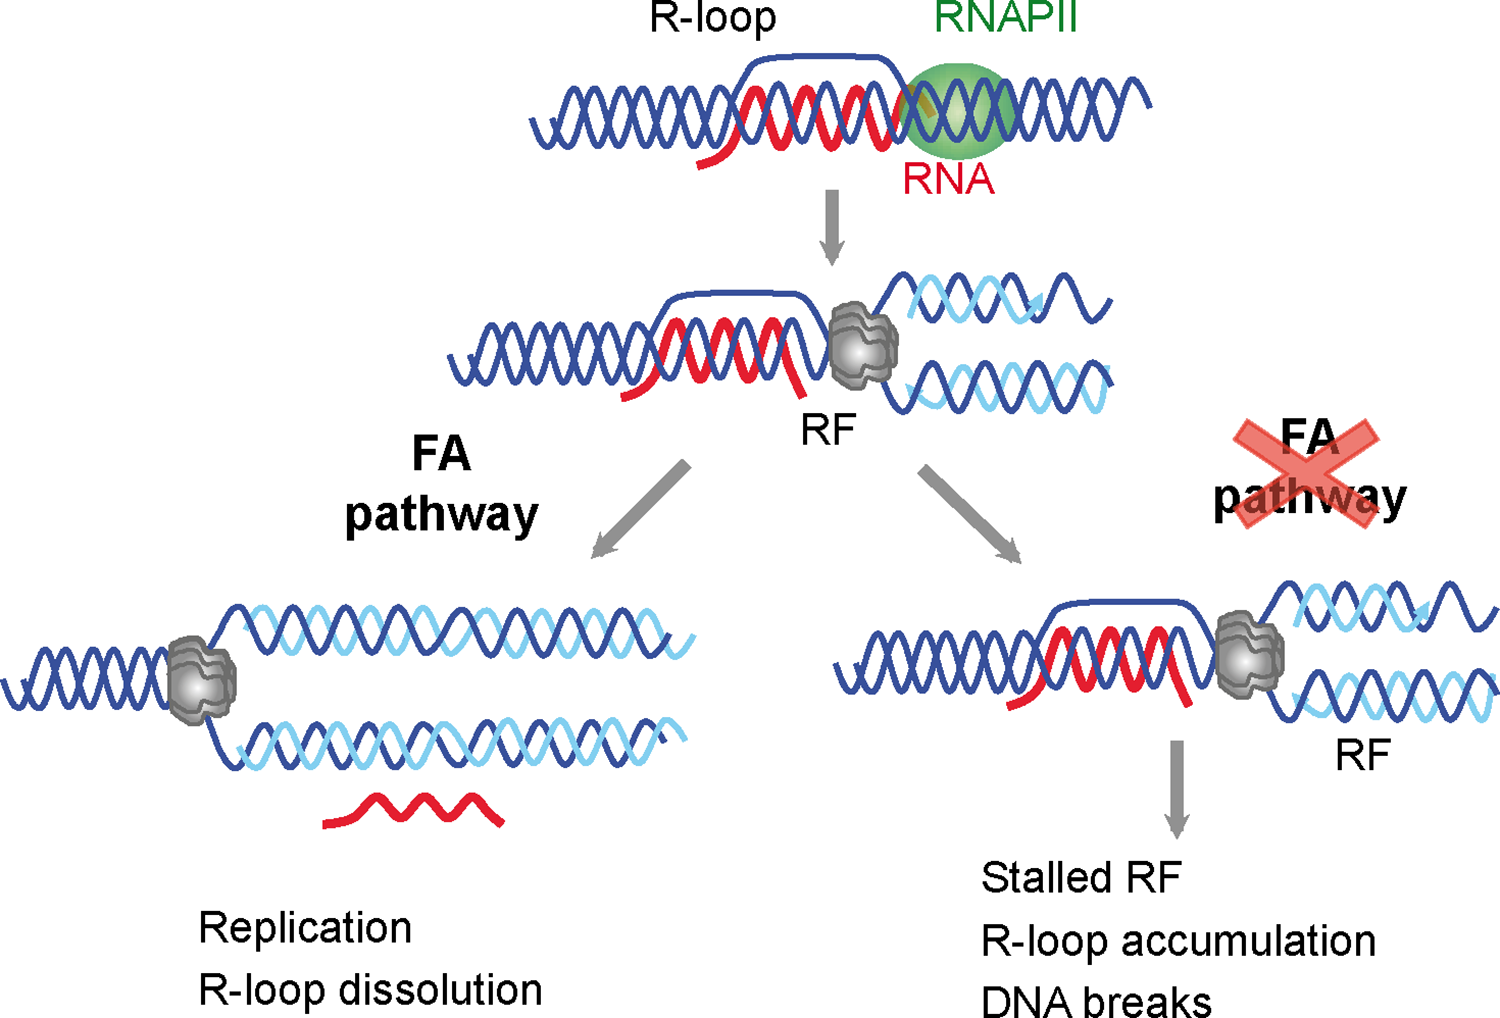 Model for a role of the FA pathway in preventing R-loop accumulation.